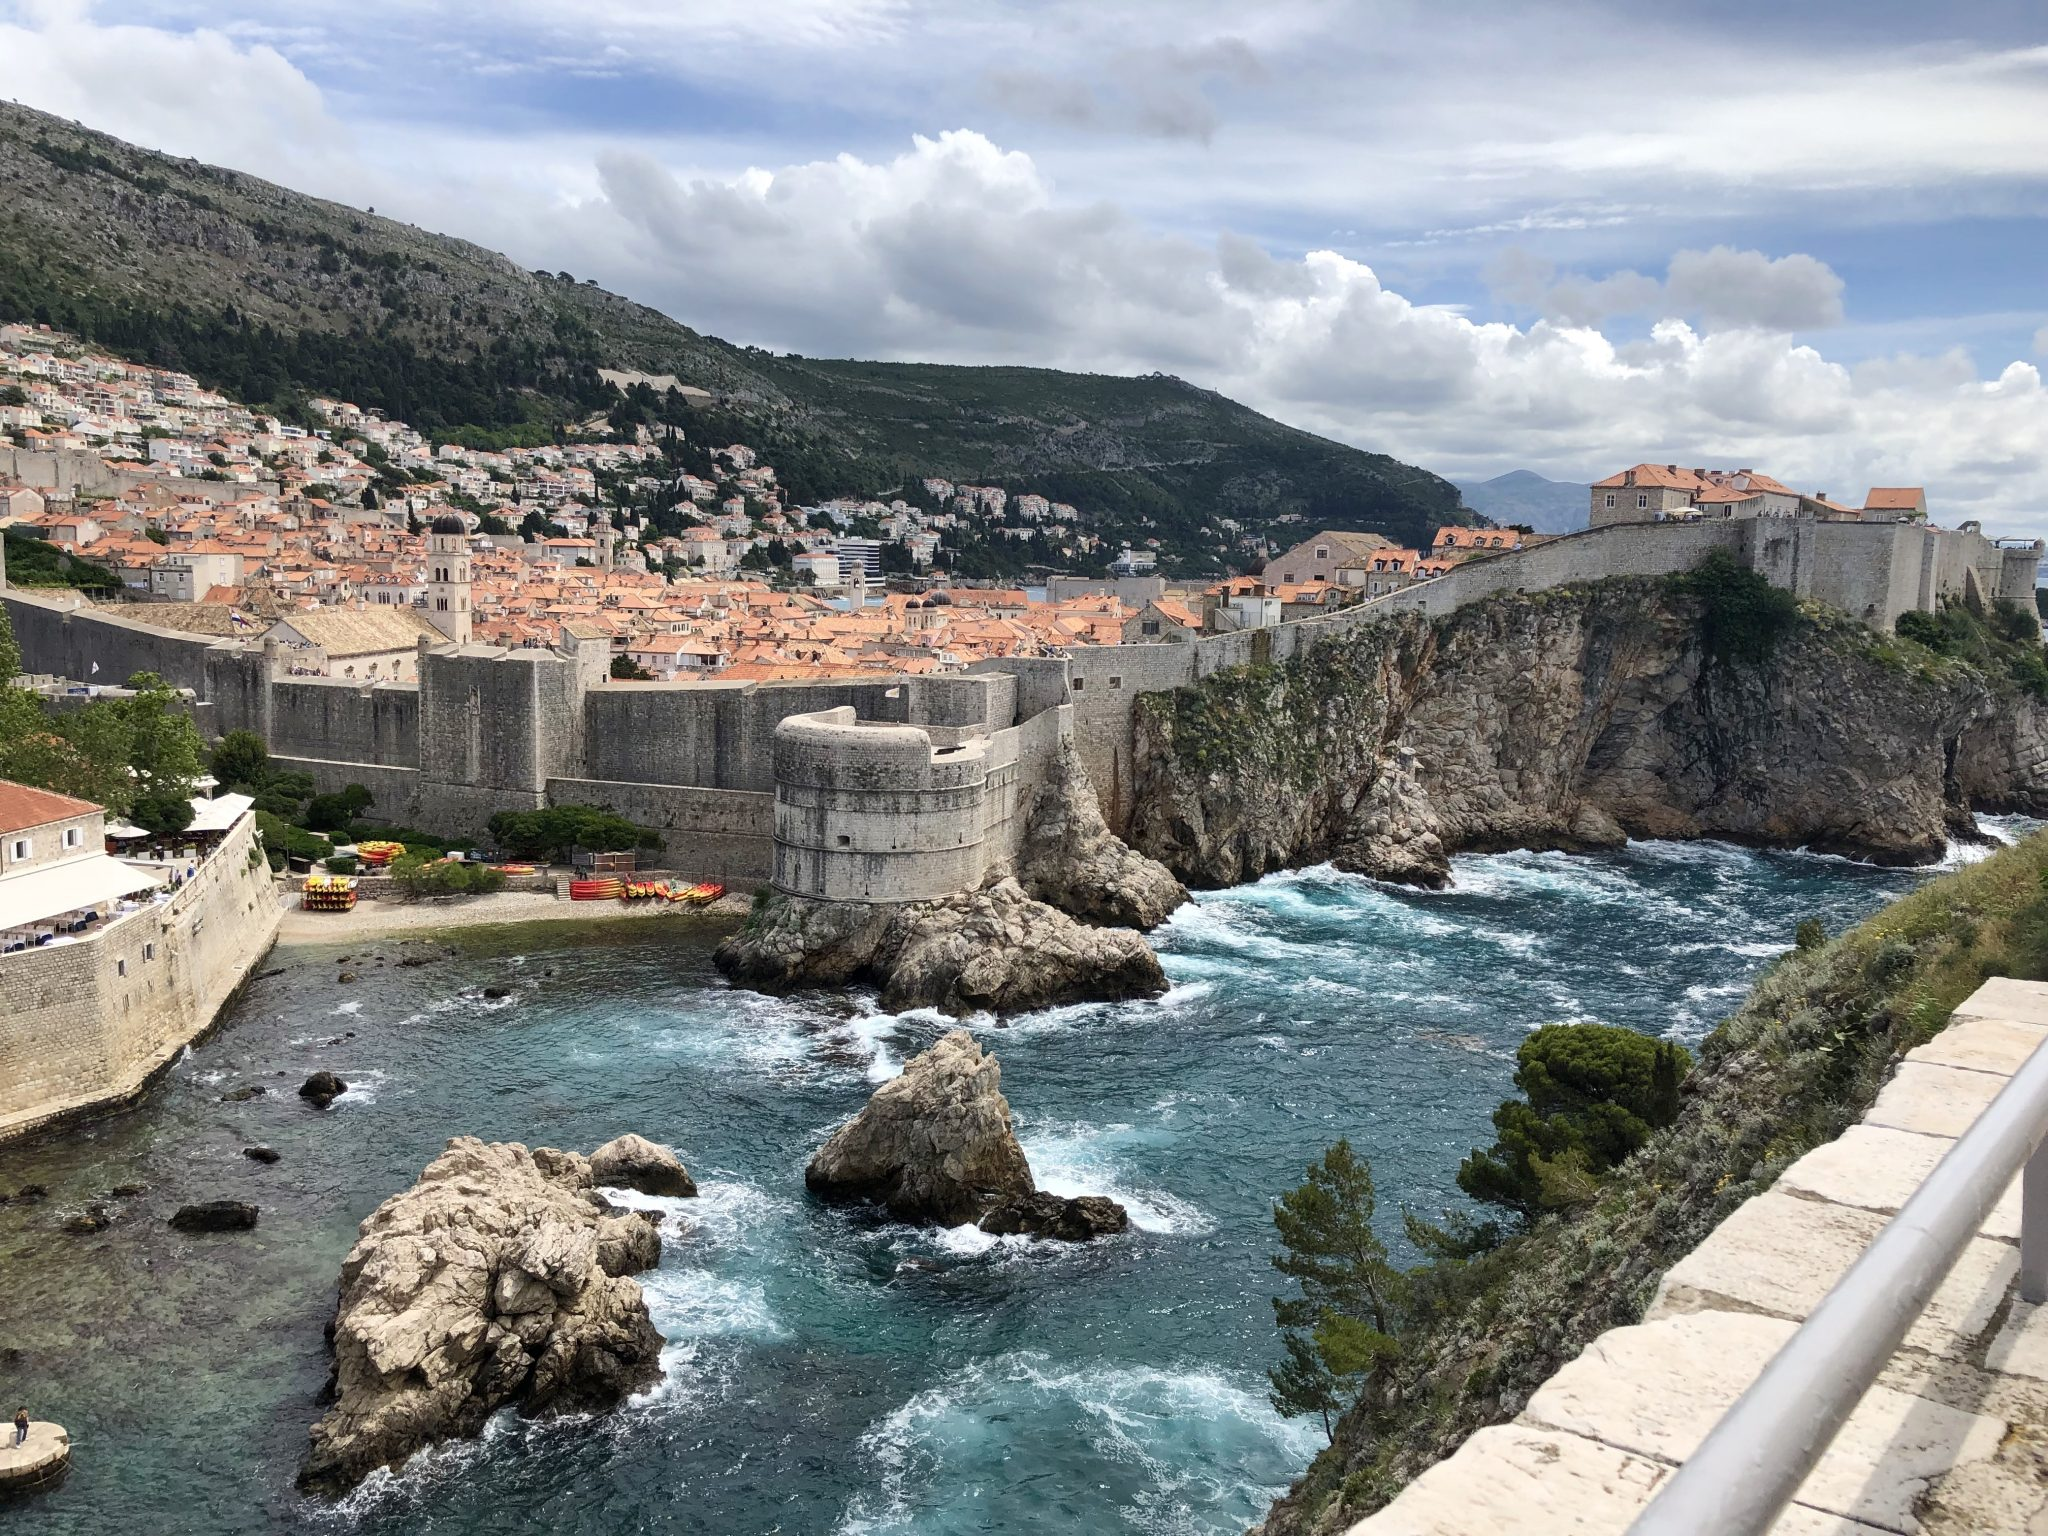 Game of Thrones location, Dubrovnik, is a fascinating city